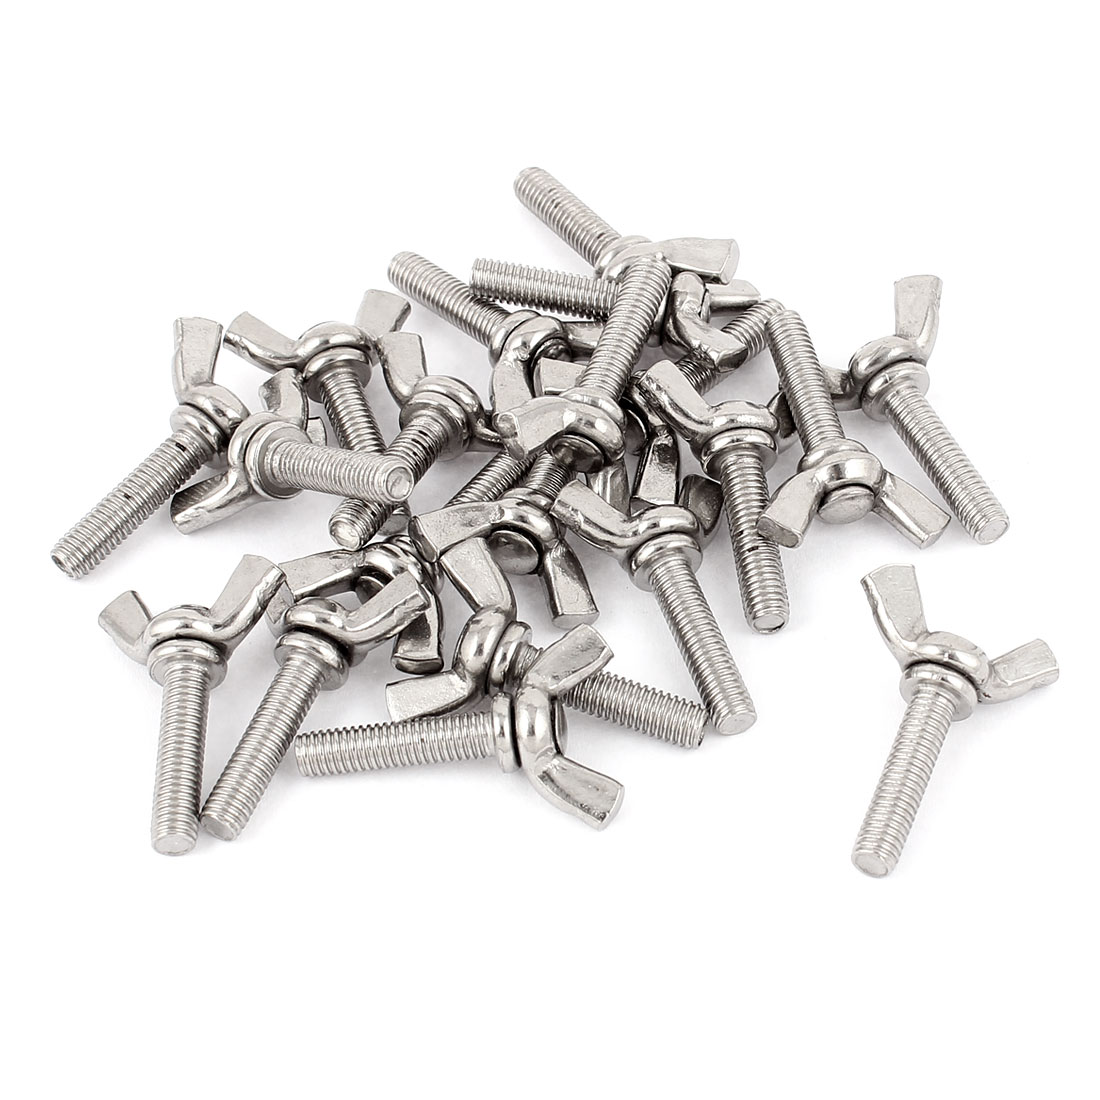 M5x20mm Thread Stainless Steel Wing Bolt Butterfly Screws Silver Tone 20Pcs